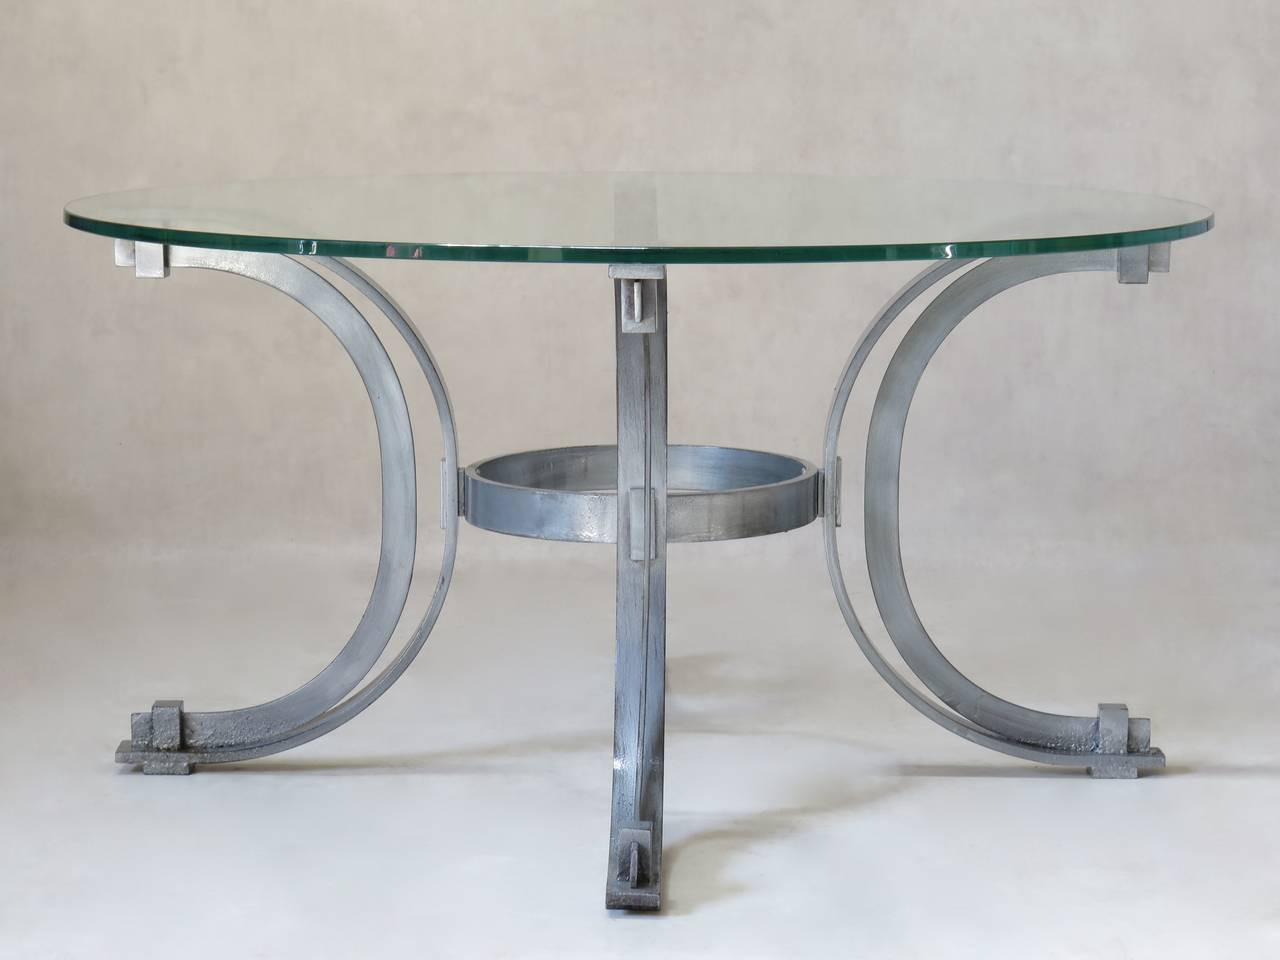 Silvered Iron Coffee Table with Glass Top, France, 1950s For Sale 2